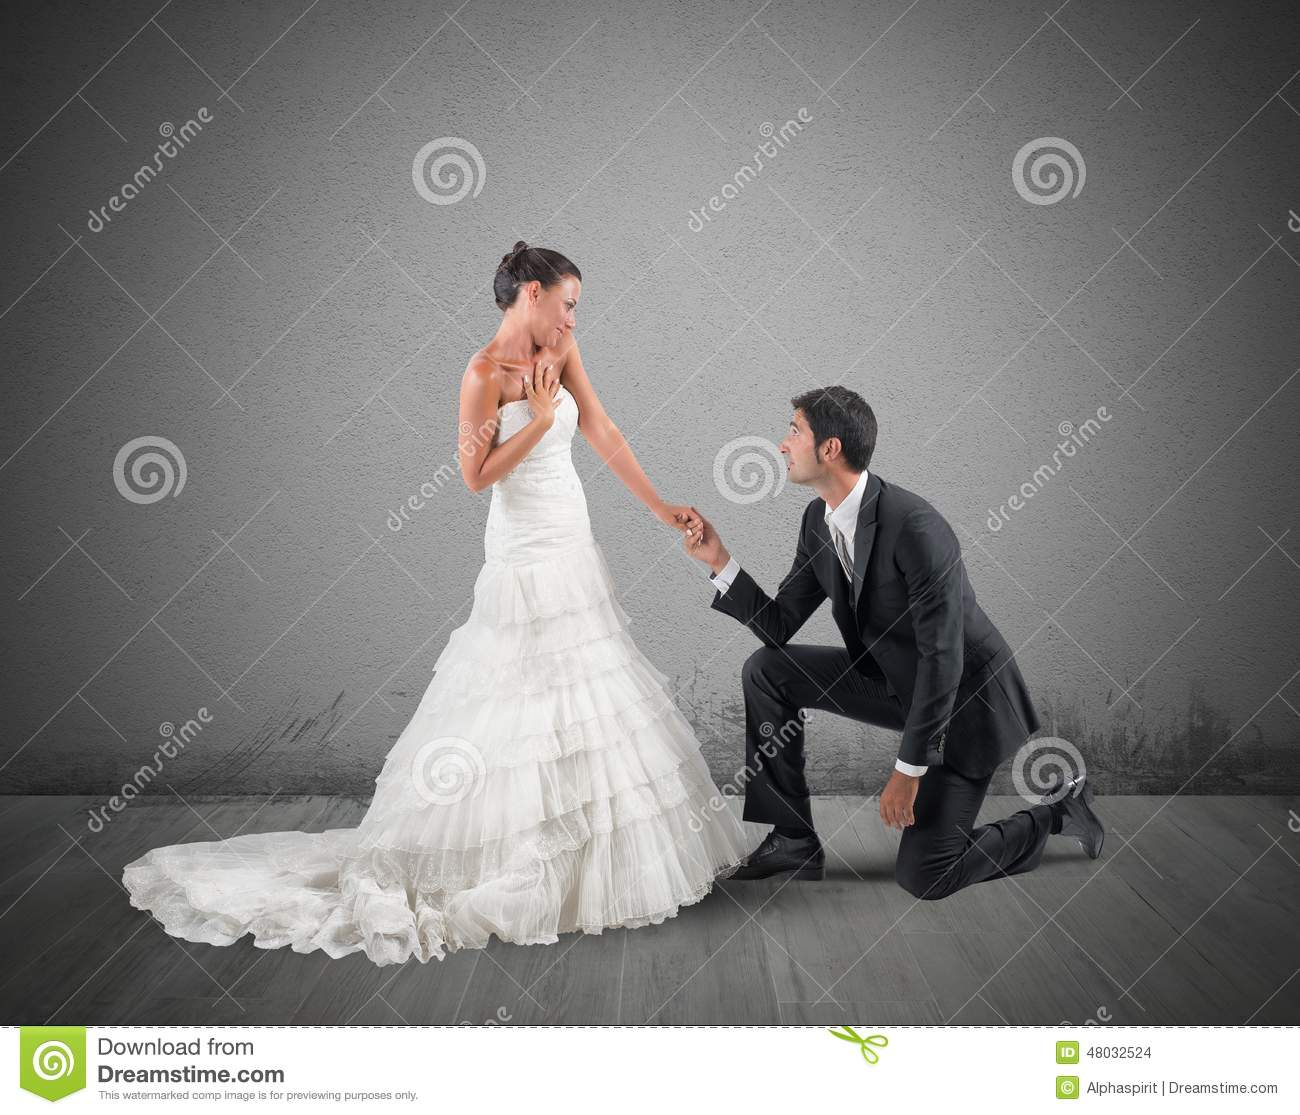 Romantic Marriage: Marriage Proposal Stock Photo